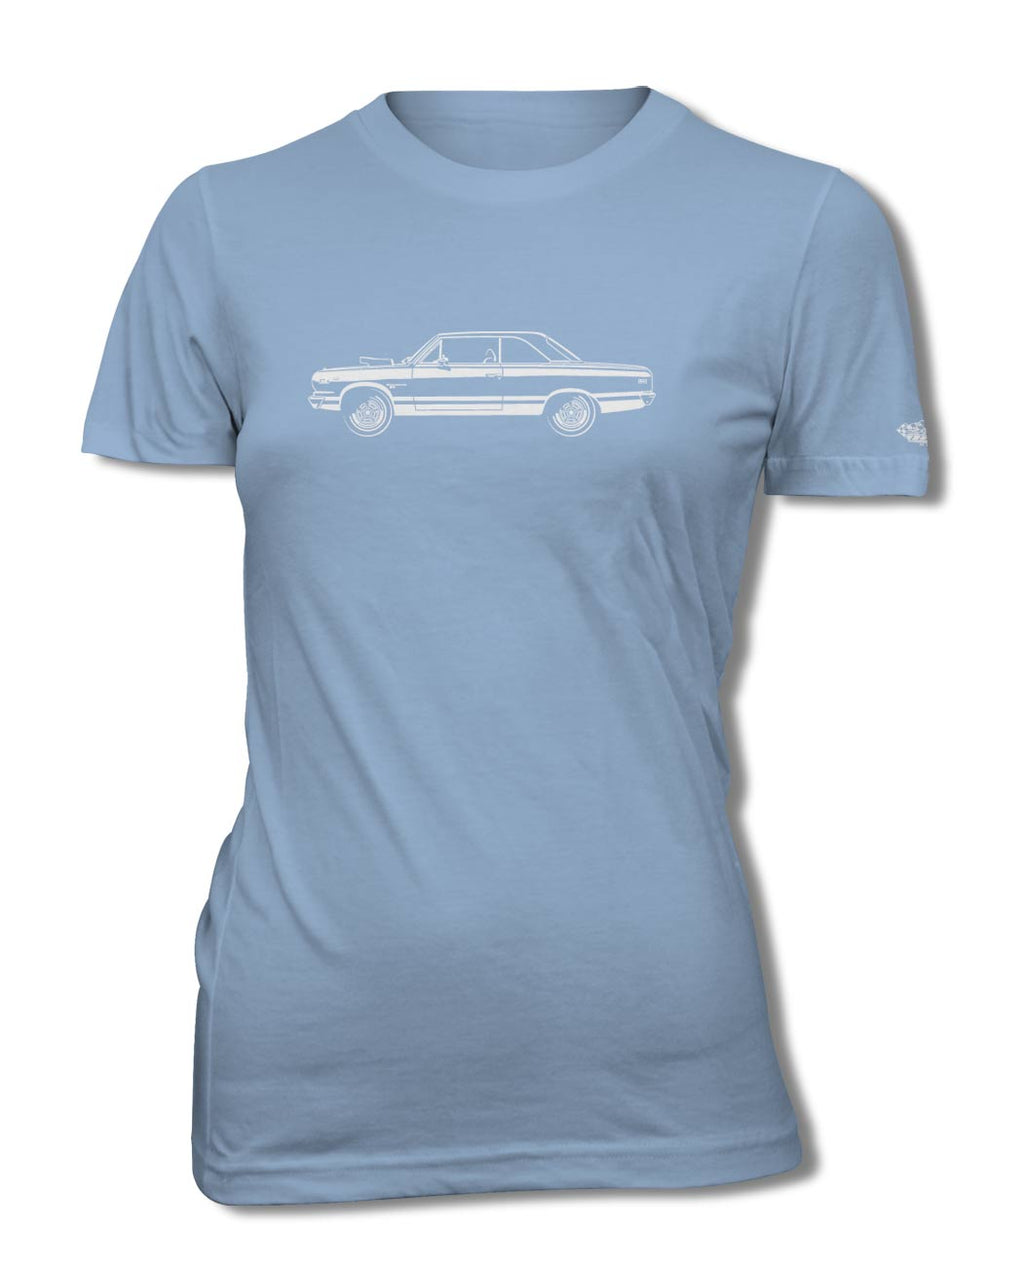 1969 AMC Hurst S/C Rambler Coupe T-Shirt - Women - Side View